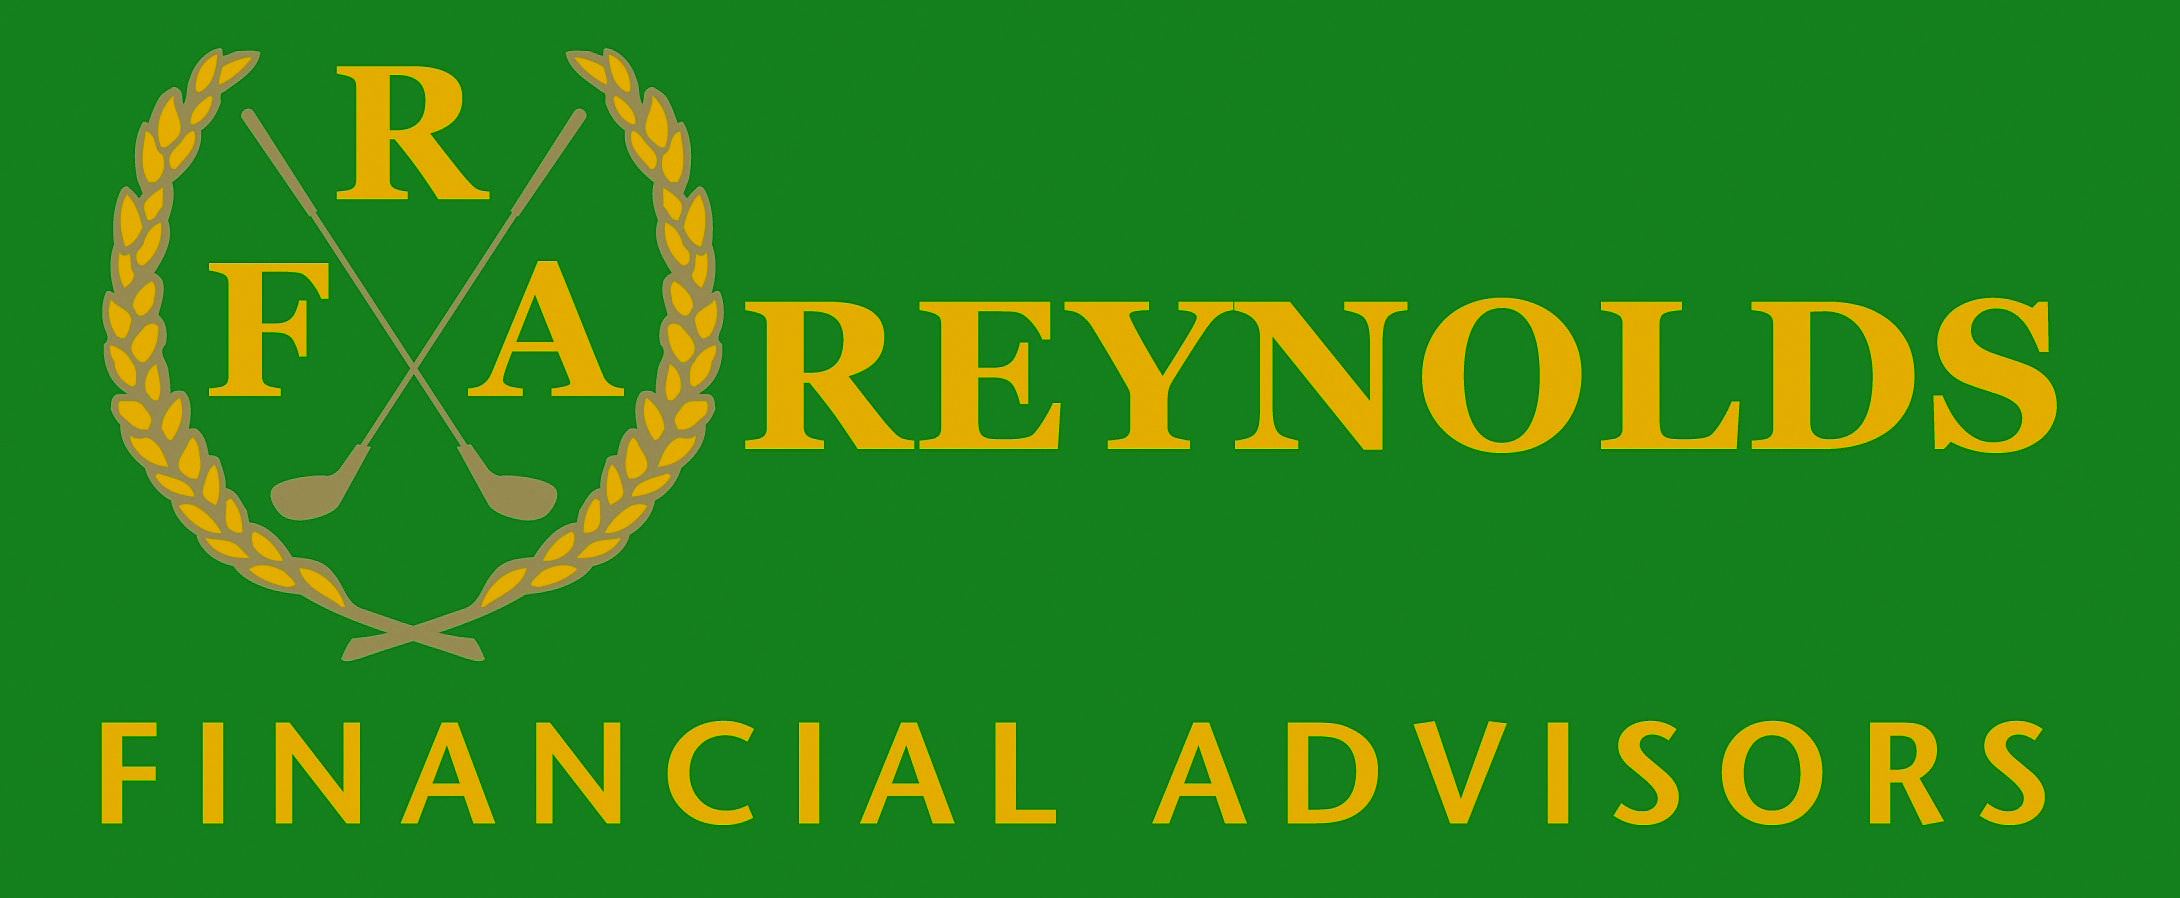 Logo for Reynolds Financial Advisors